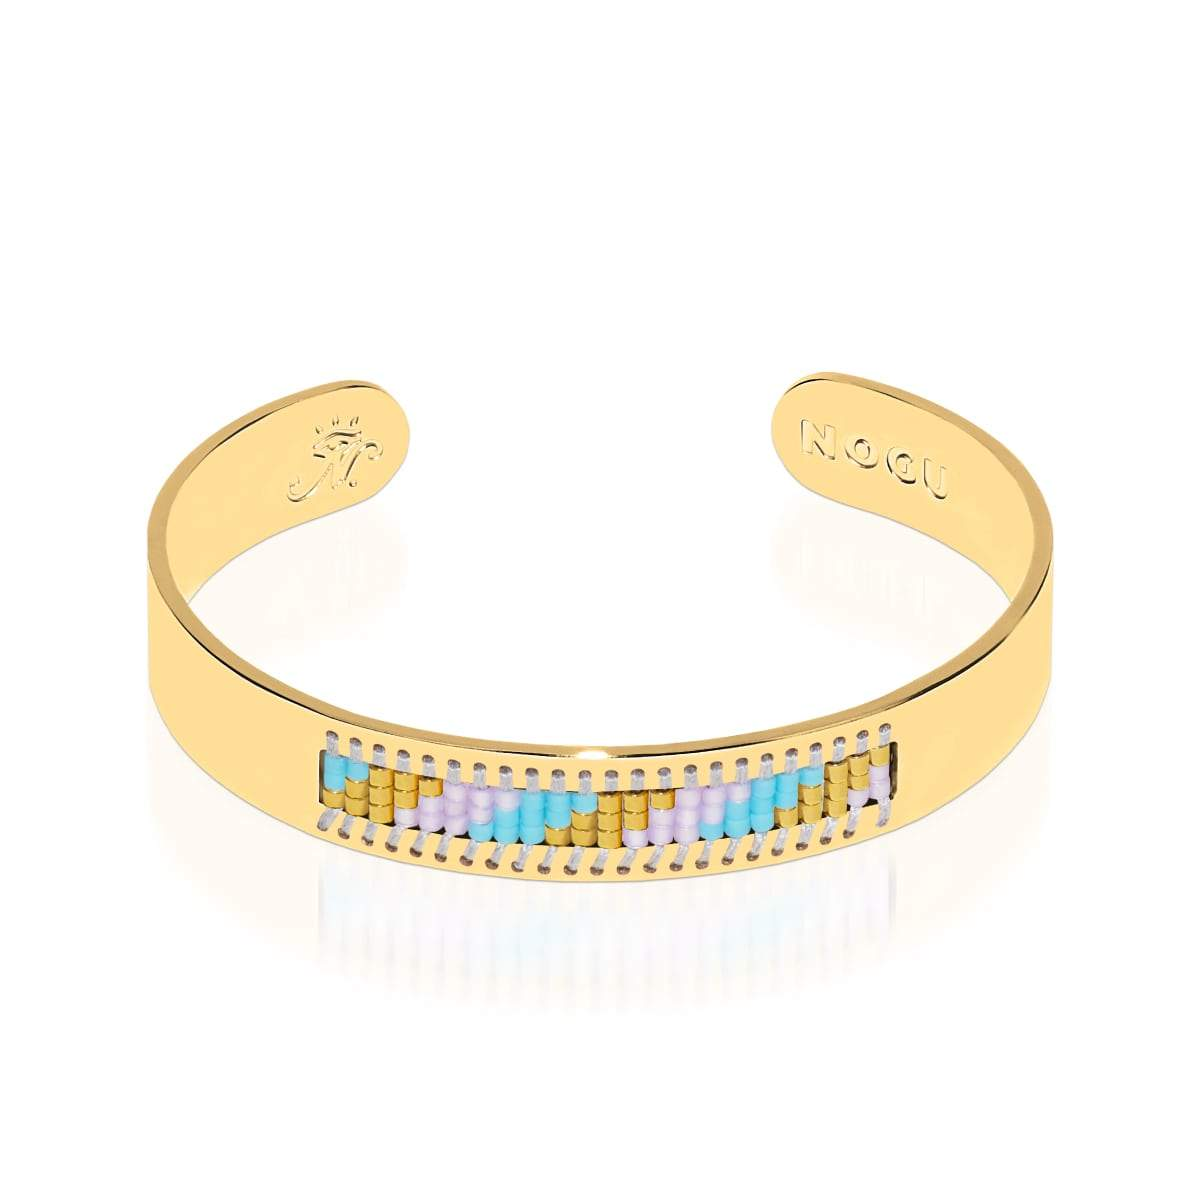 Laguna Niguel | 18k Gold | Boho Bangle